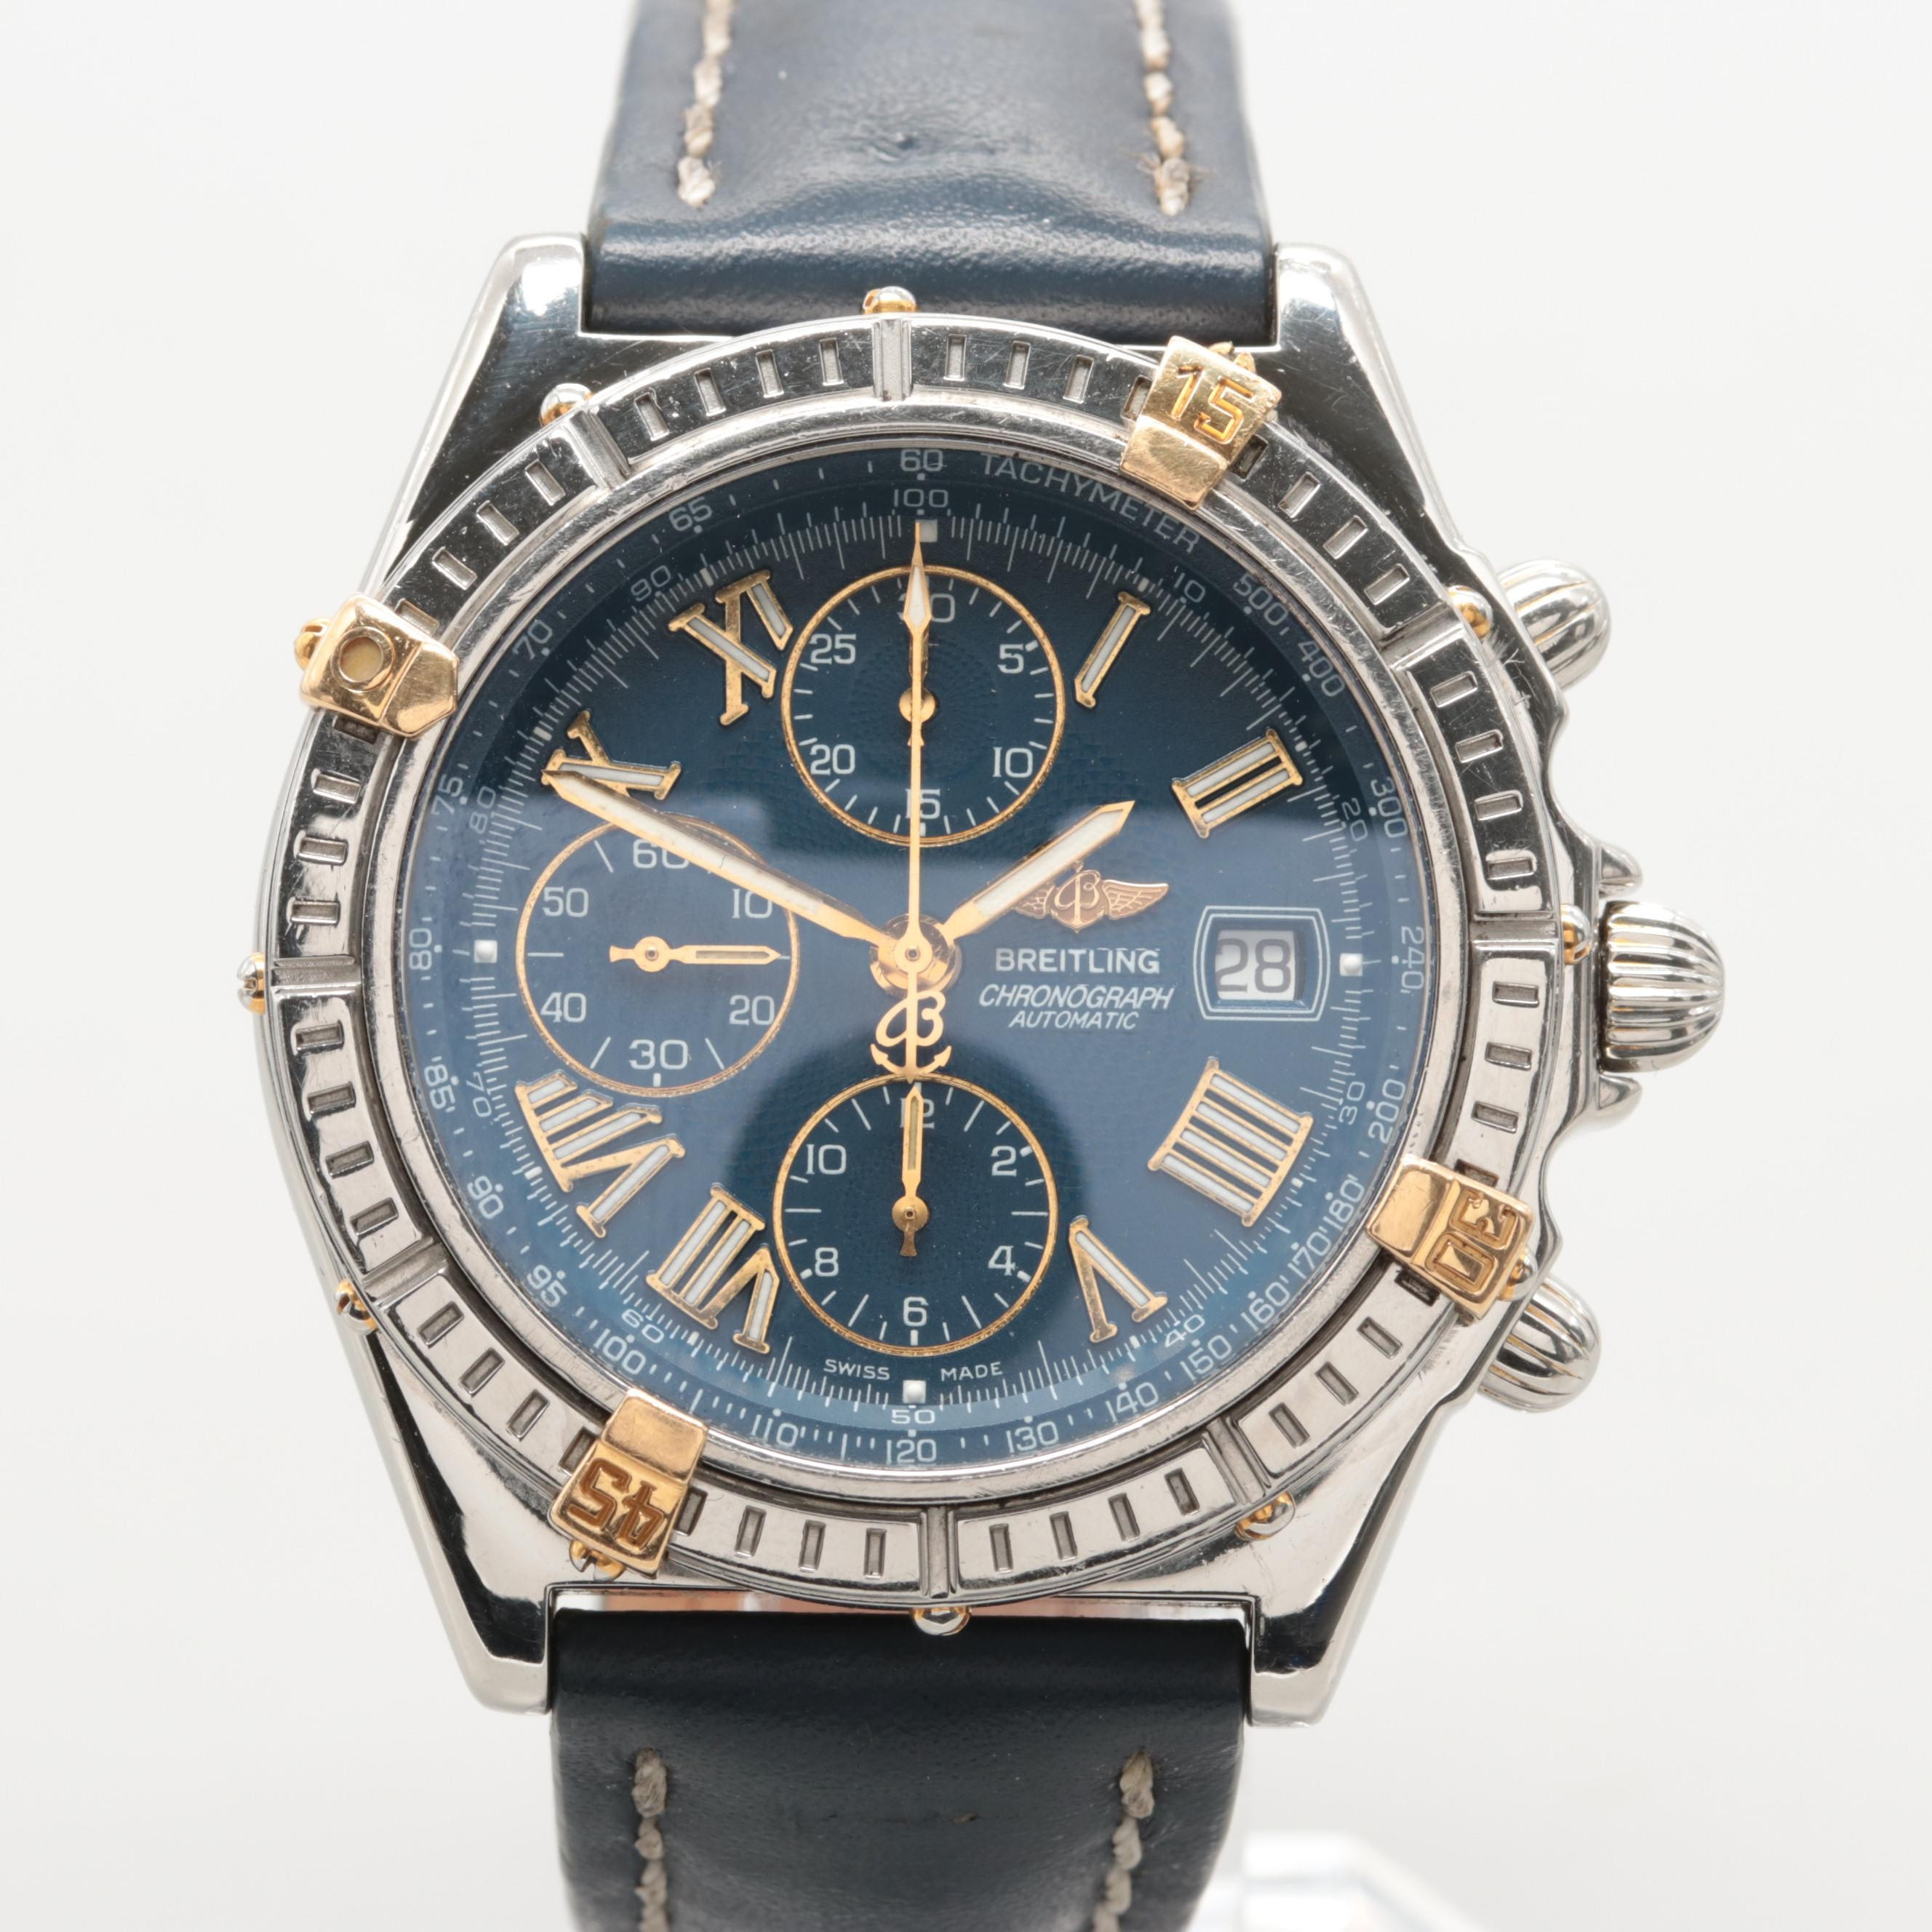 Breitling Crosswind 18K Yellow Gold and Stainless Steel Chronograph Wristwatch